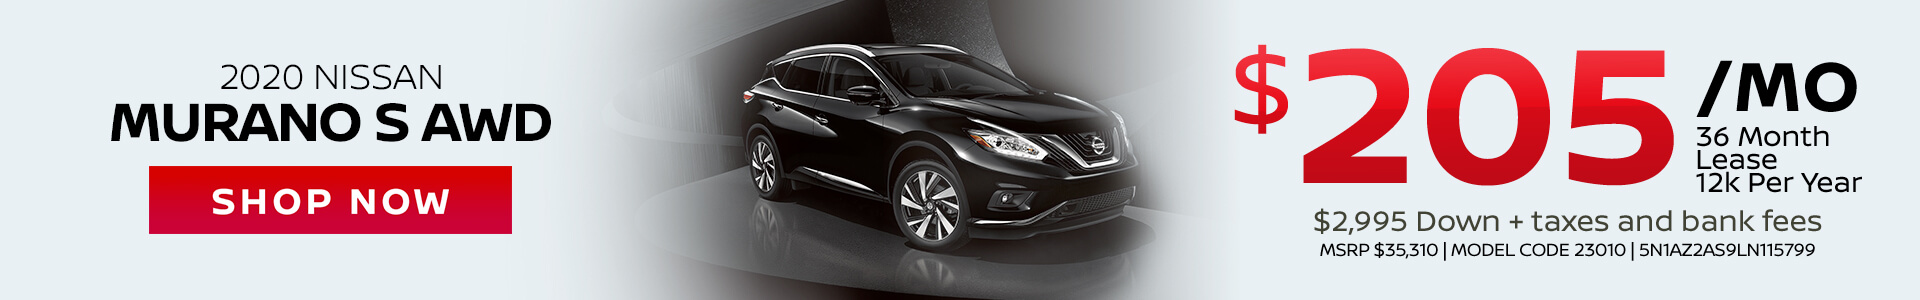 Nissan Murano $205 Lease